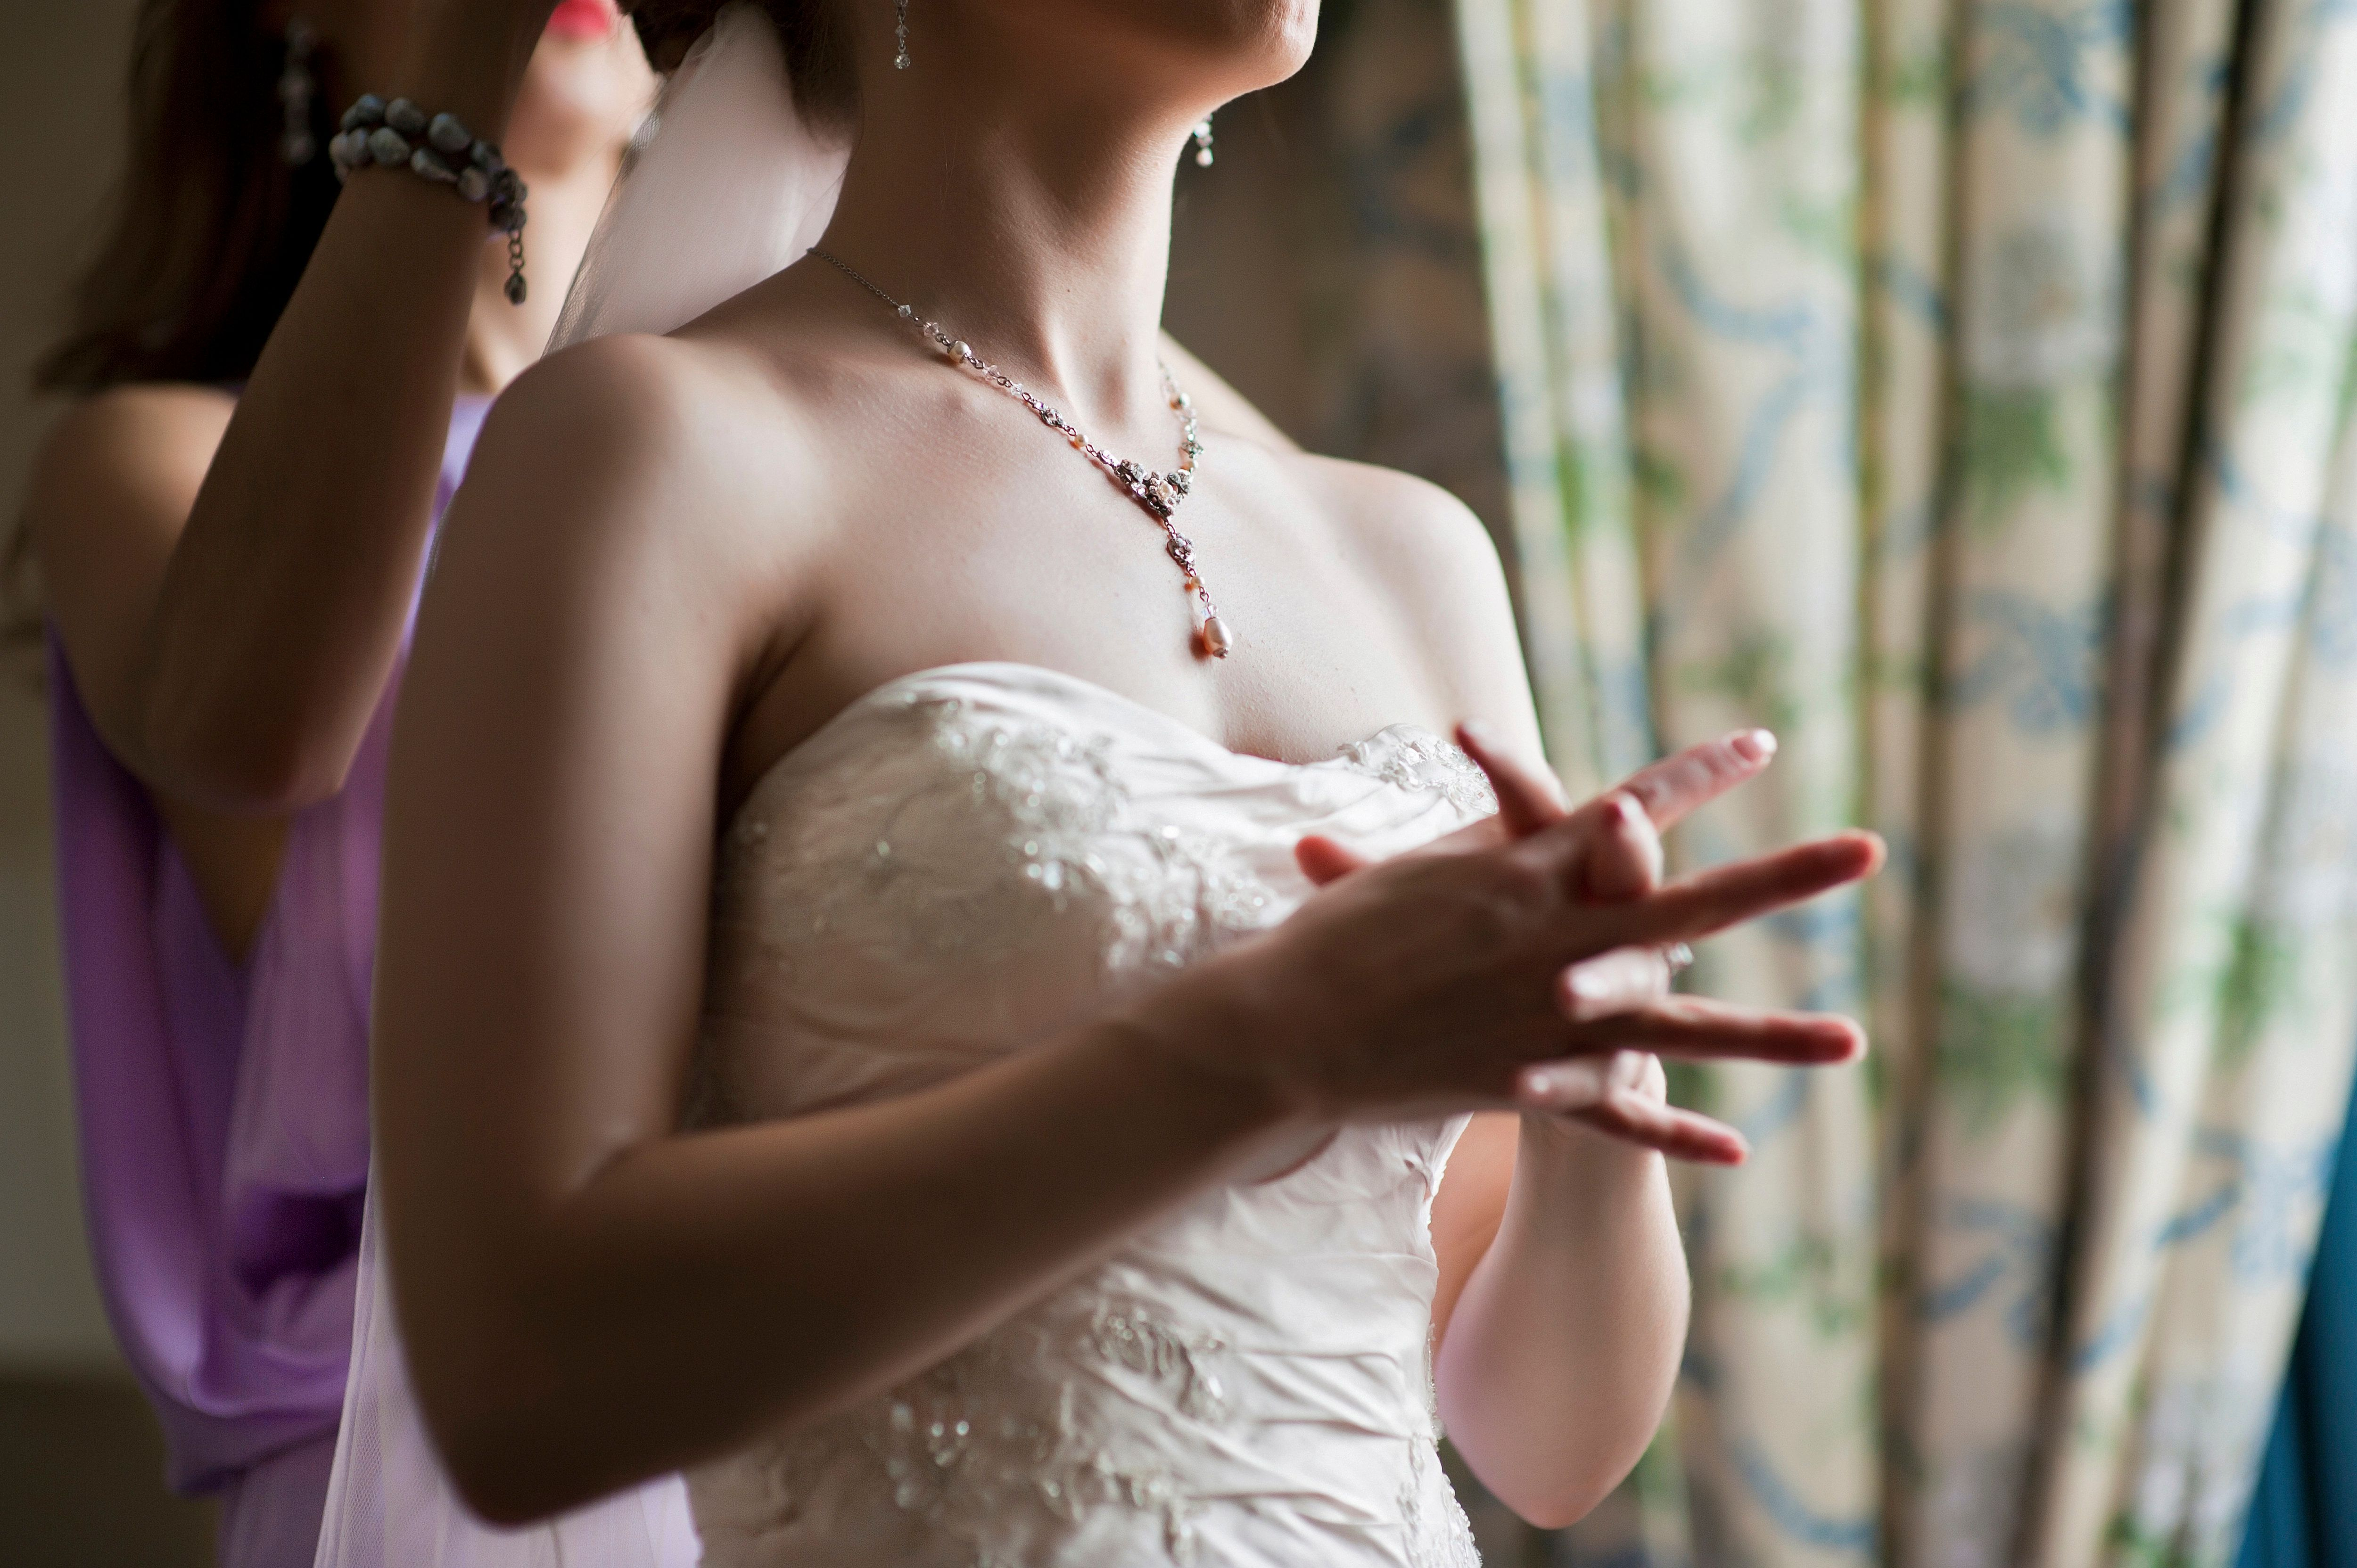 Brides and grooms reveal what they would change about theirweddings if they were doing it all over again.